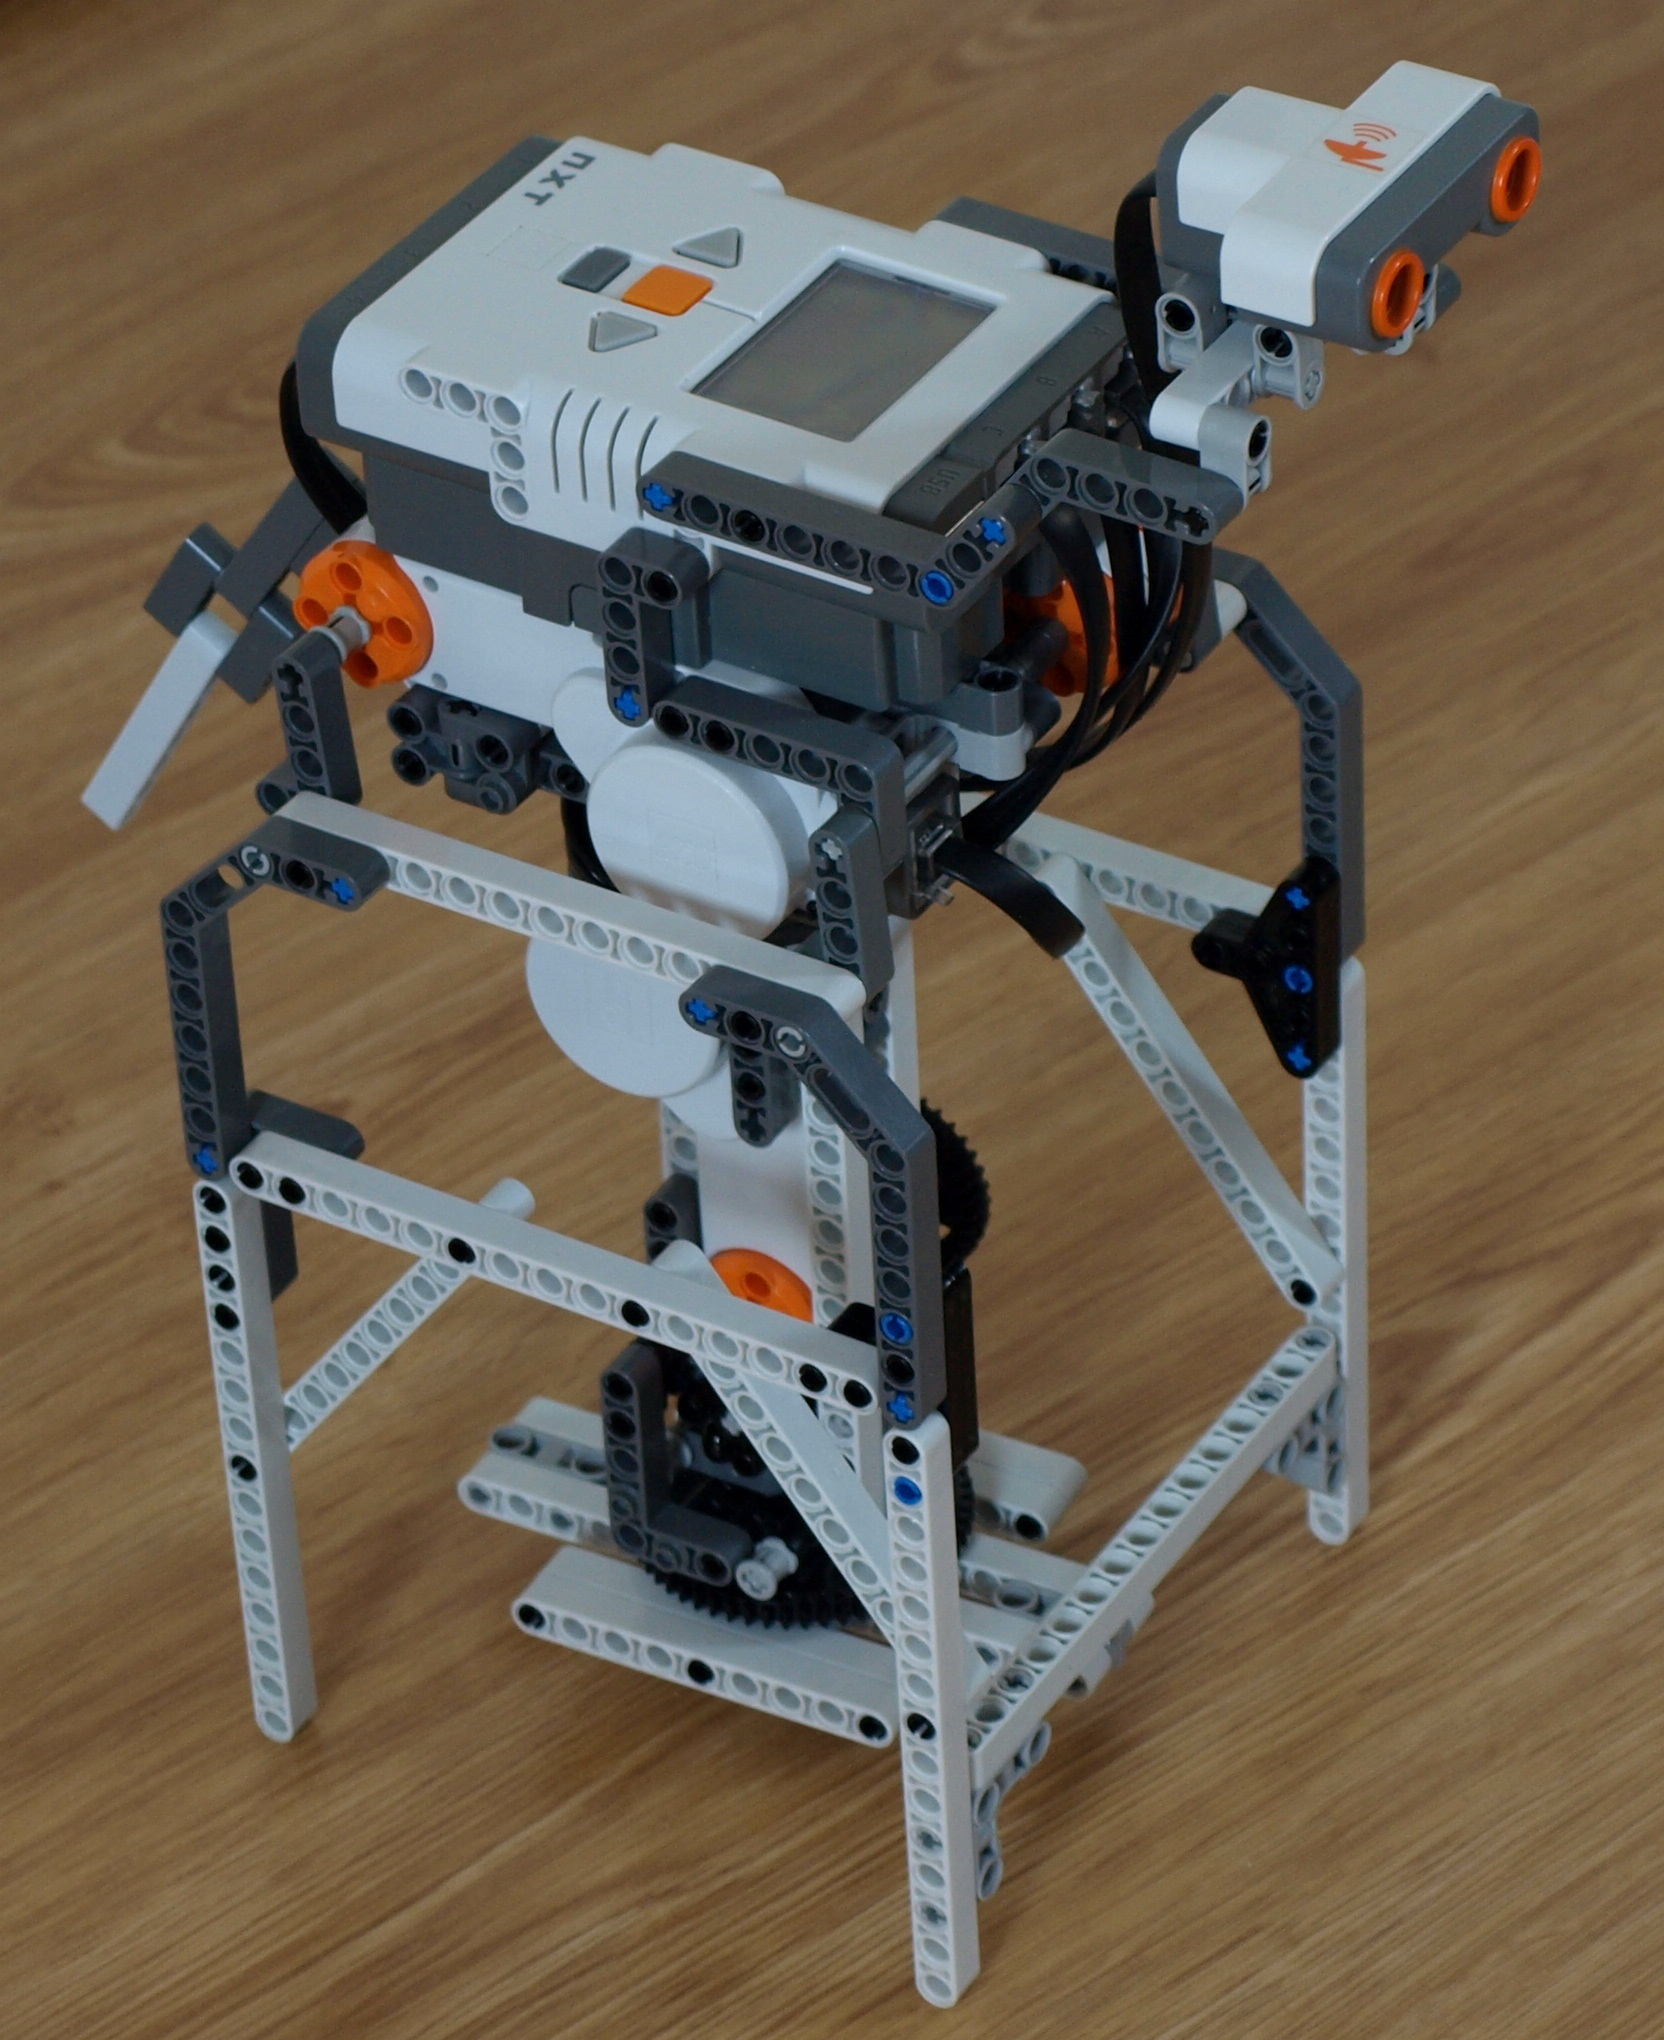 Nxt Robodog By Laurens Mindstorms Nxt Building Instructions